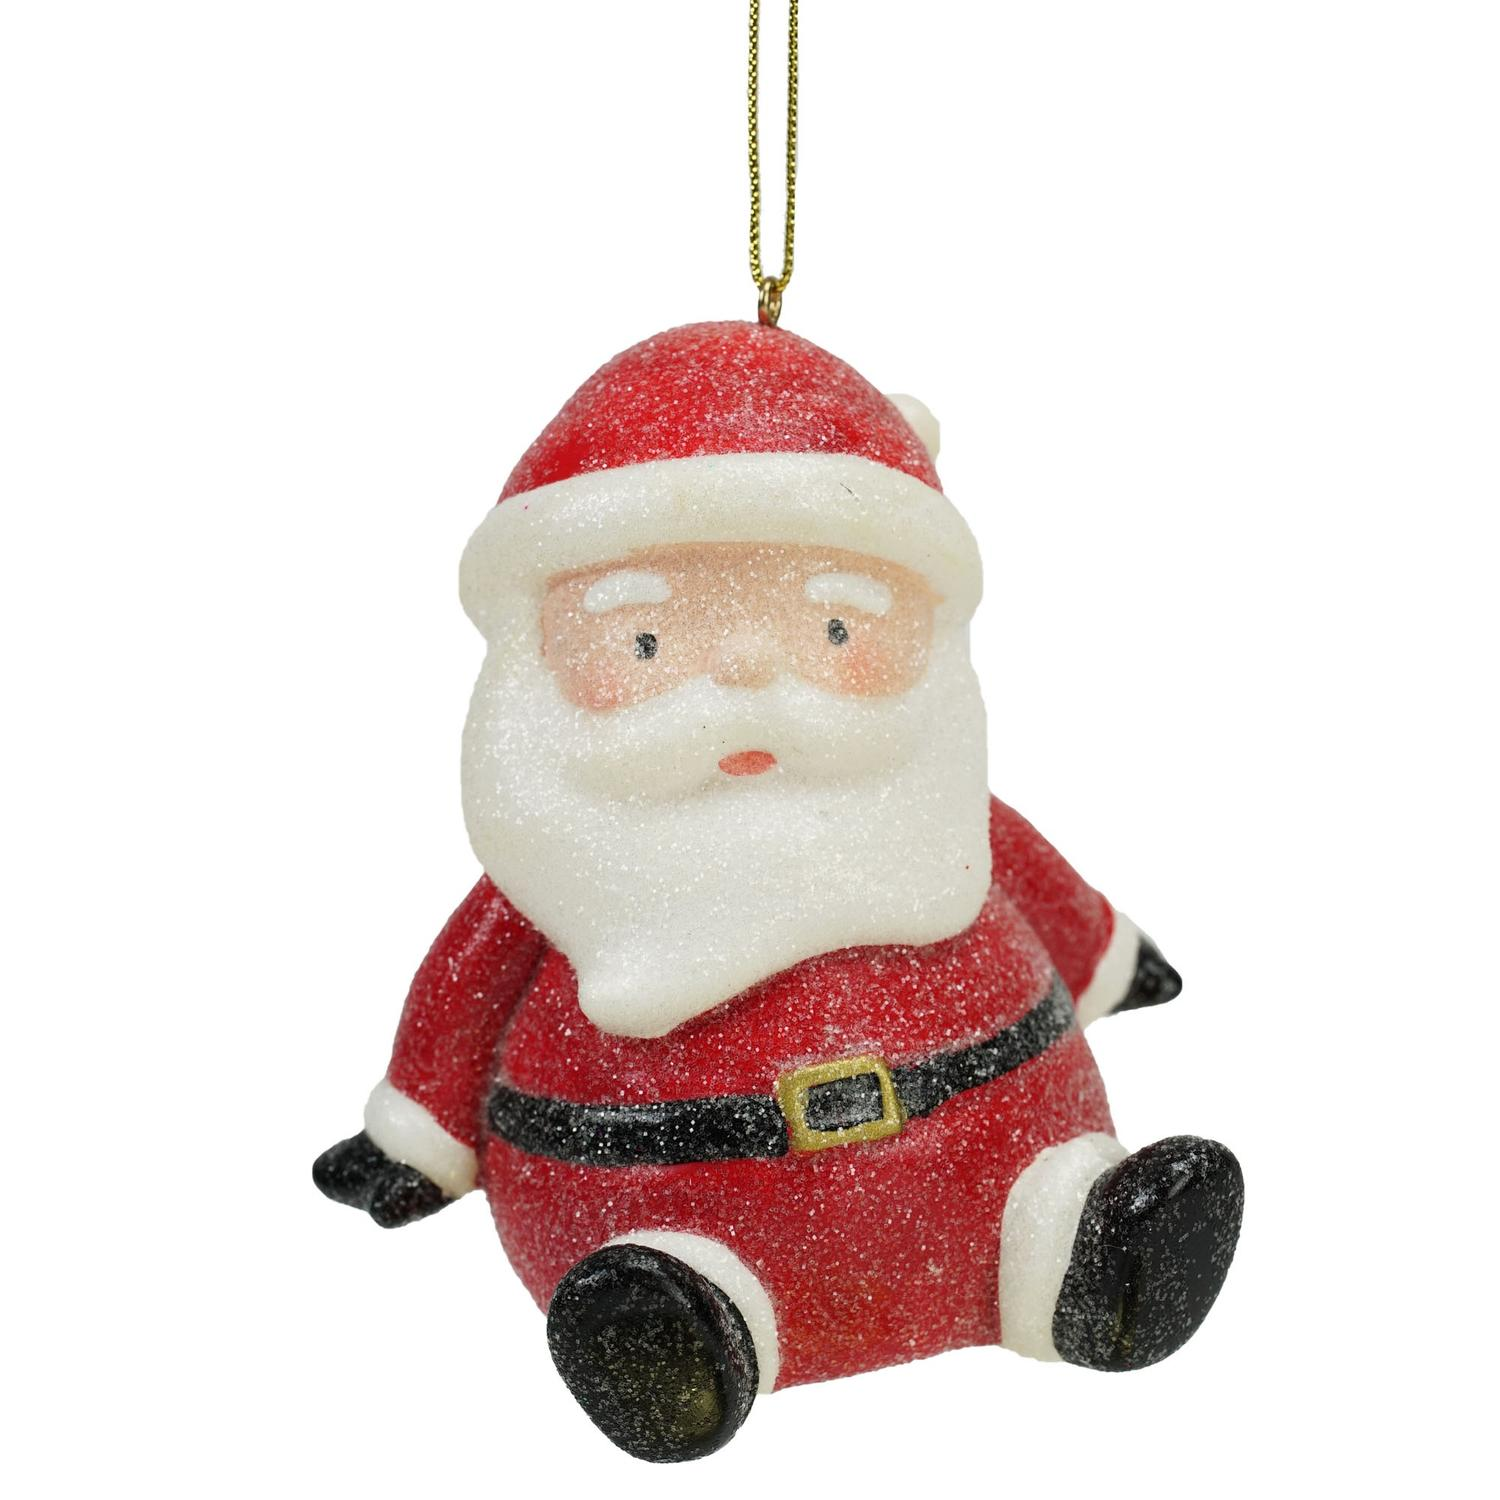 """4.25"""" Sweet Memories Lighted Musical Frosted Santa Claus Christmas Ornament"""